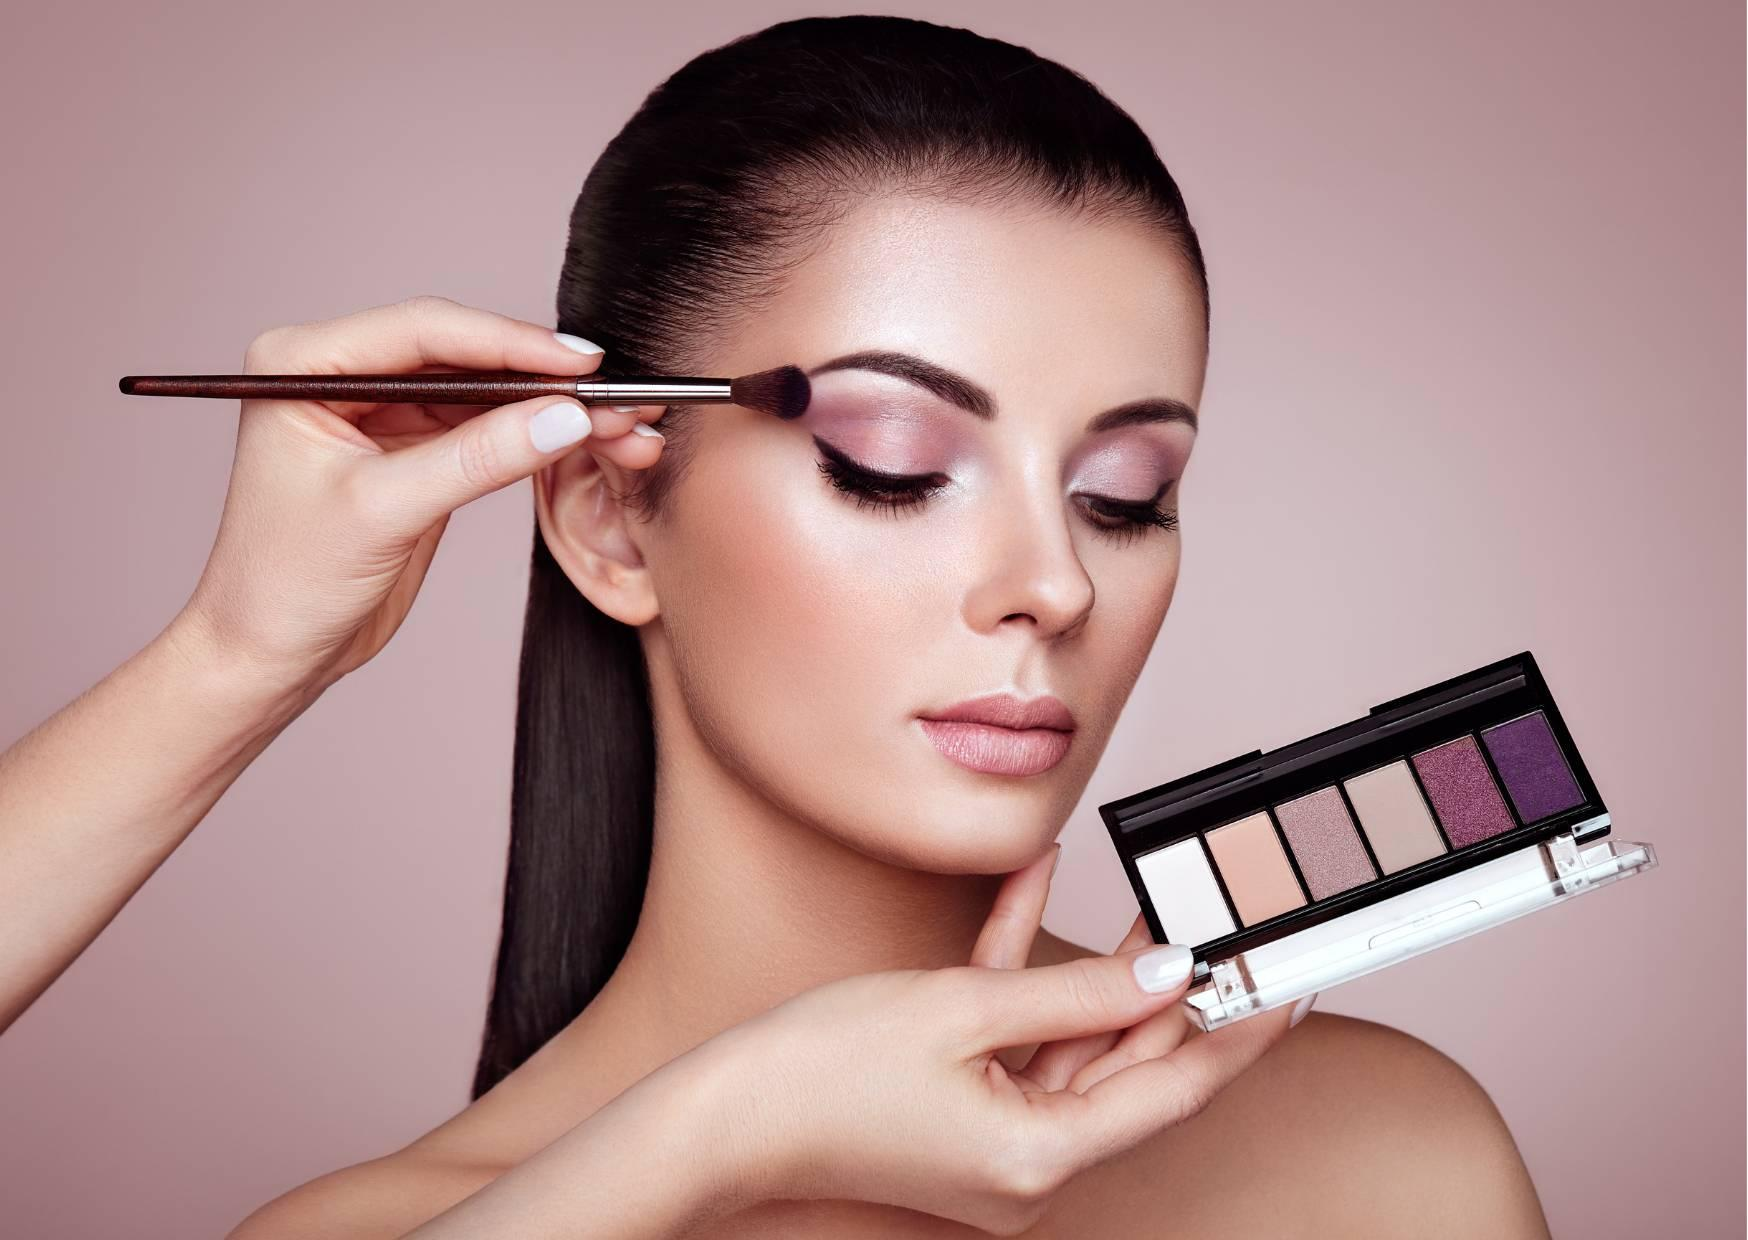 Looking Good and Feeling Good: Mixing Health with Cosmetics